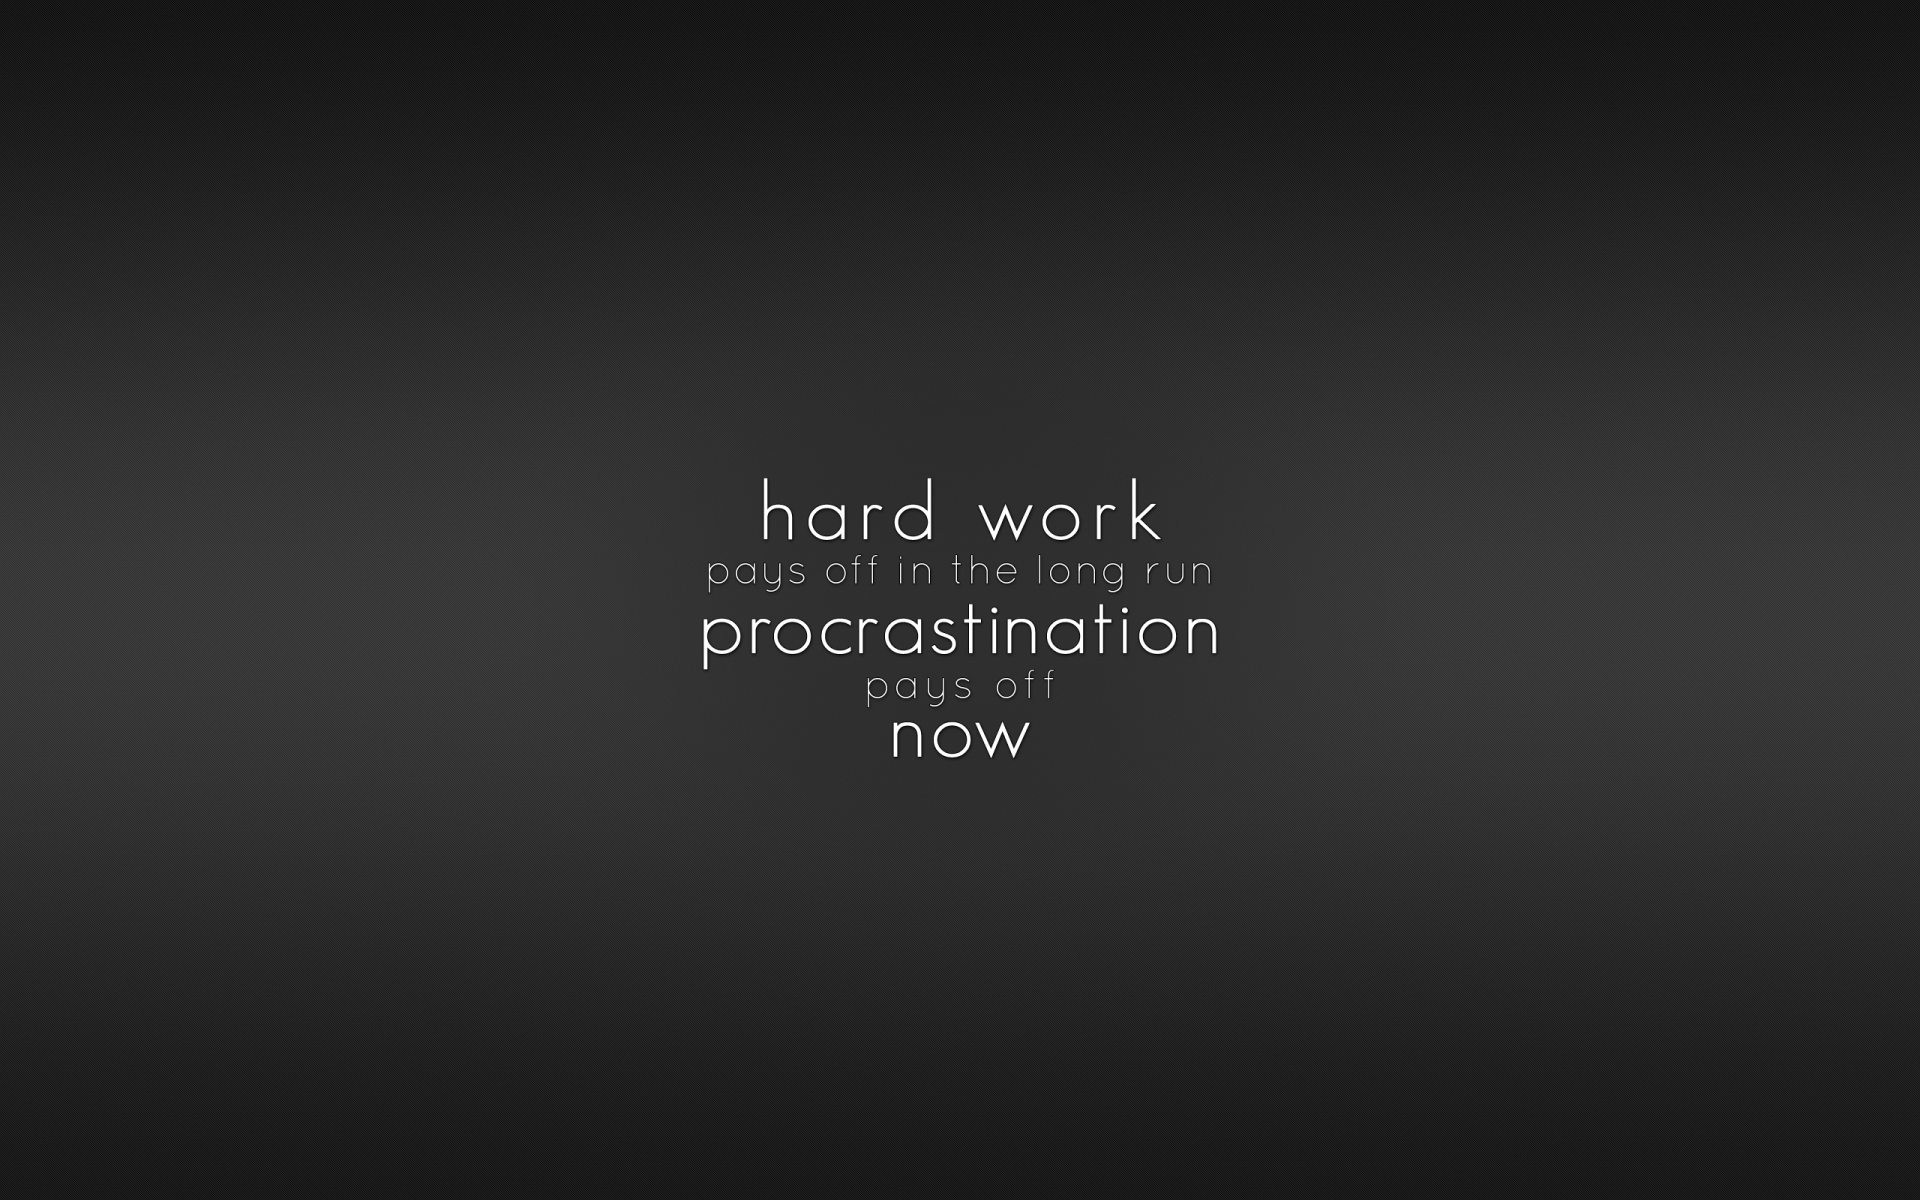 Wallpapers For Laptop With Quotes